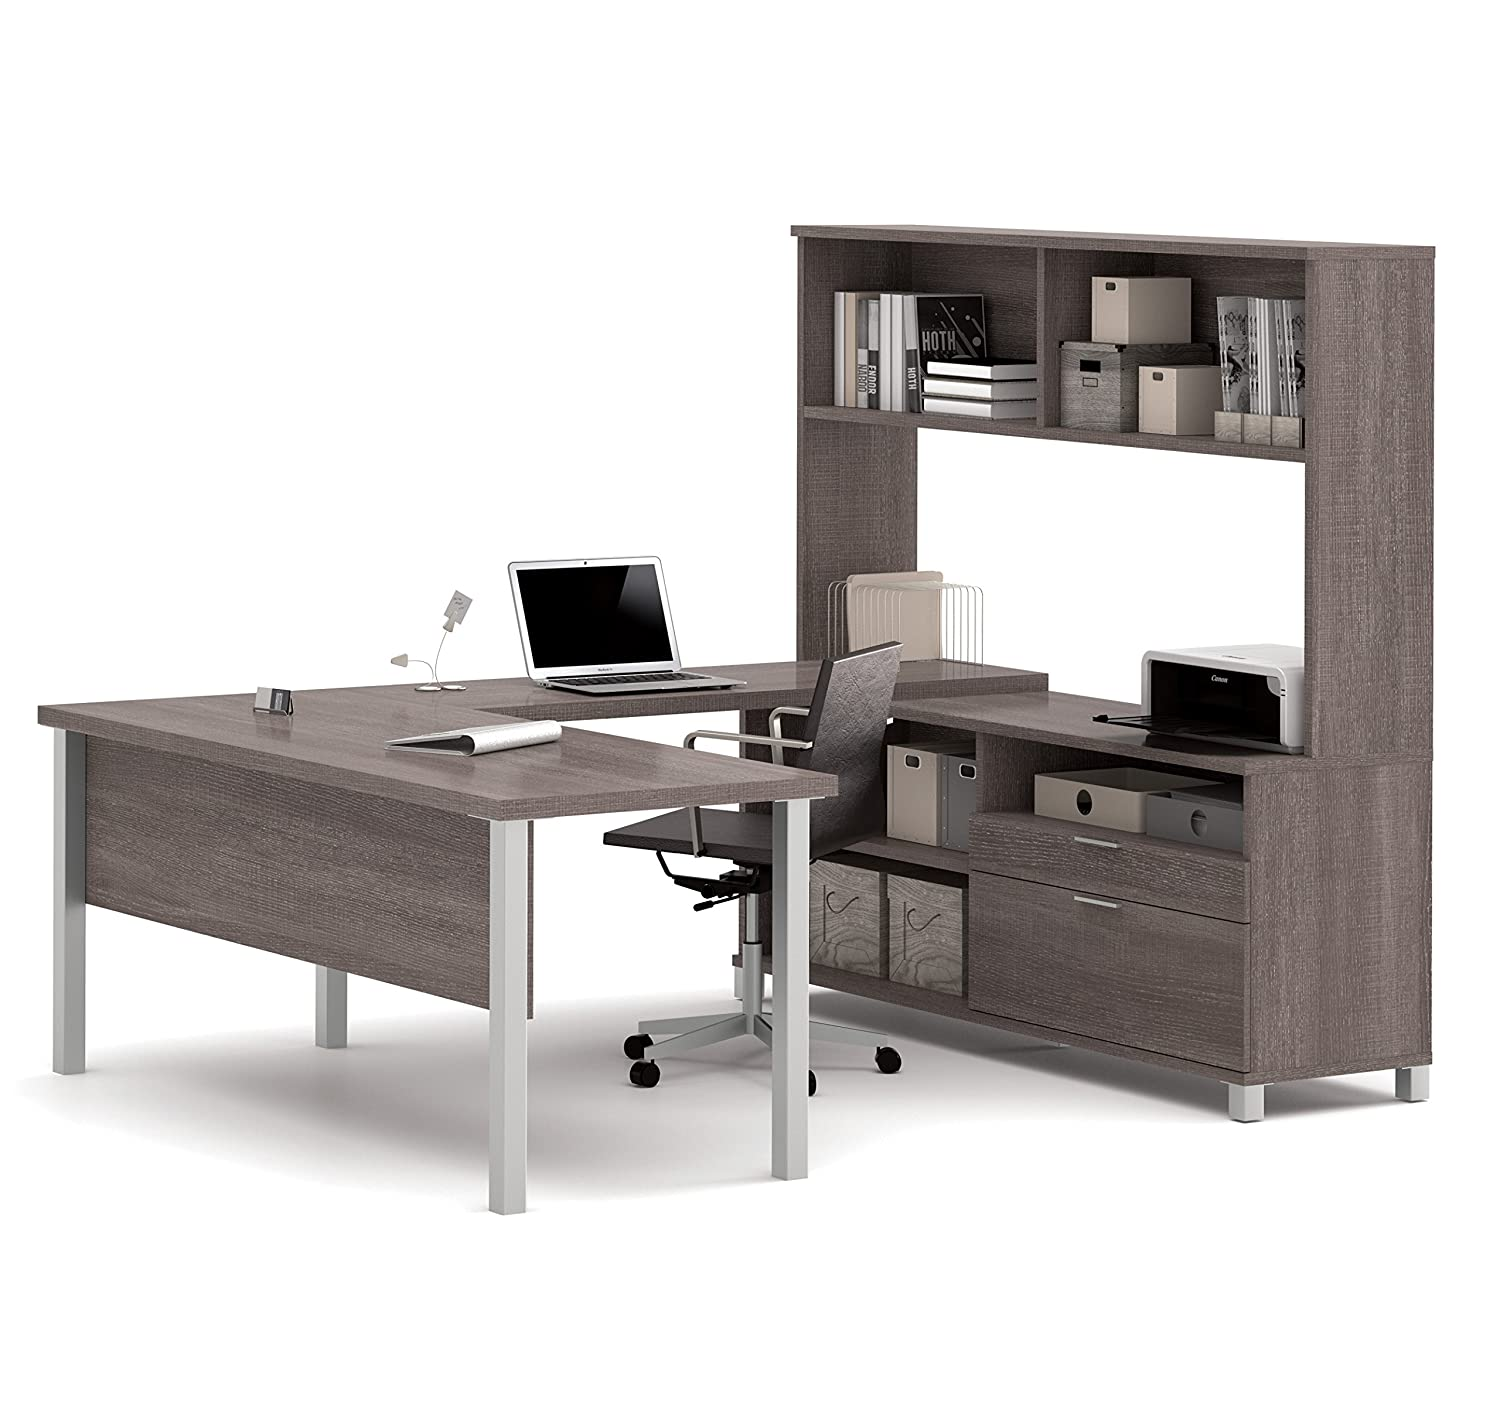 Amazon.com: BESTAR Pro Linea U Desk With Hutch, Bark Grey: Kitchen U0026 Dining